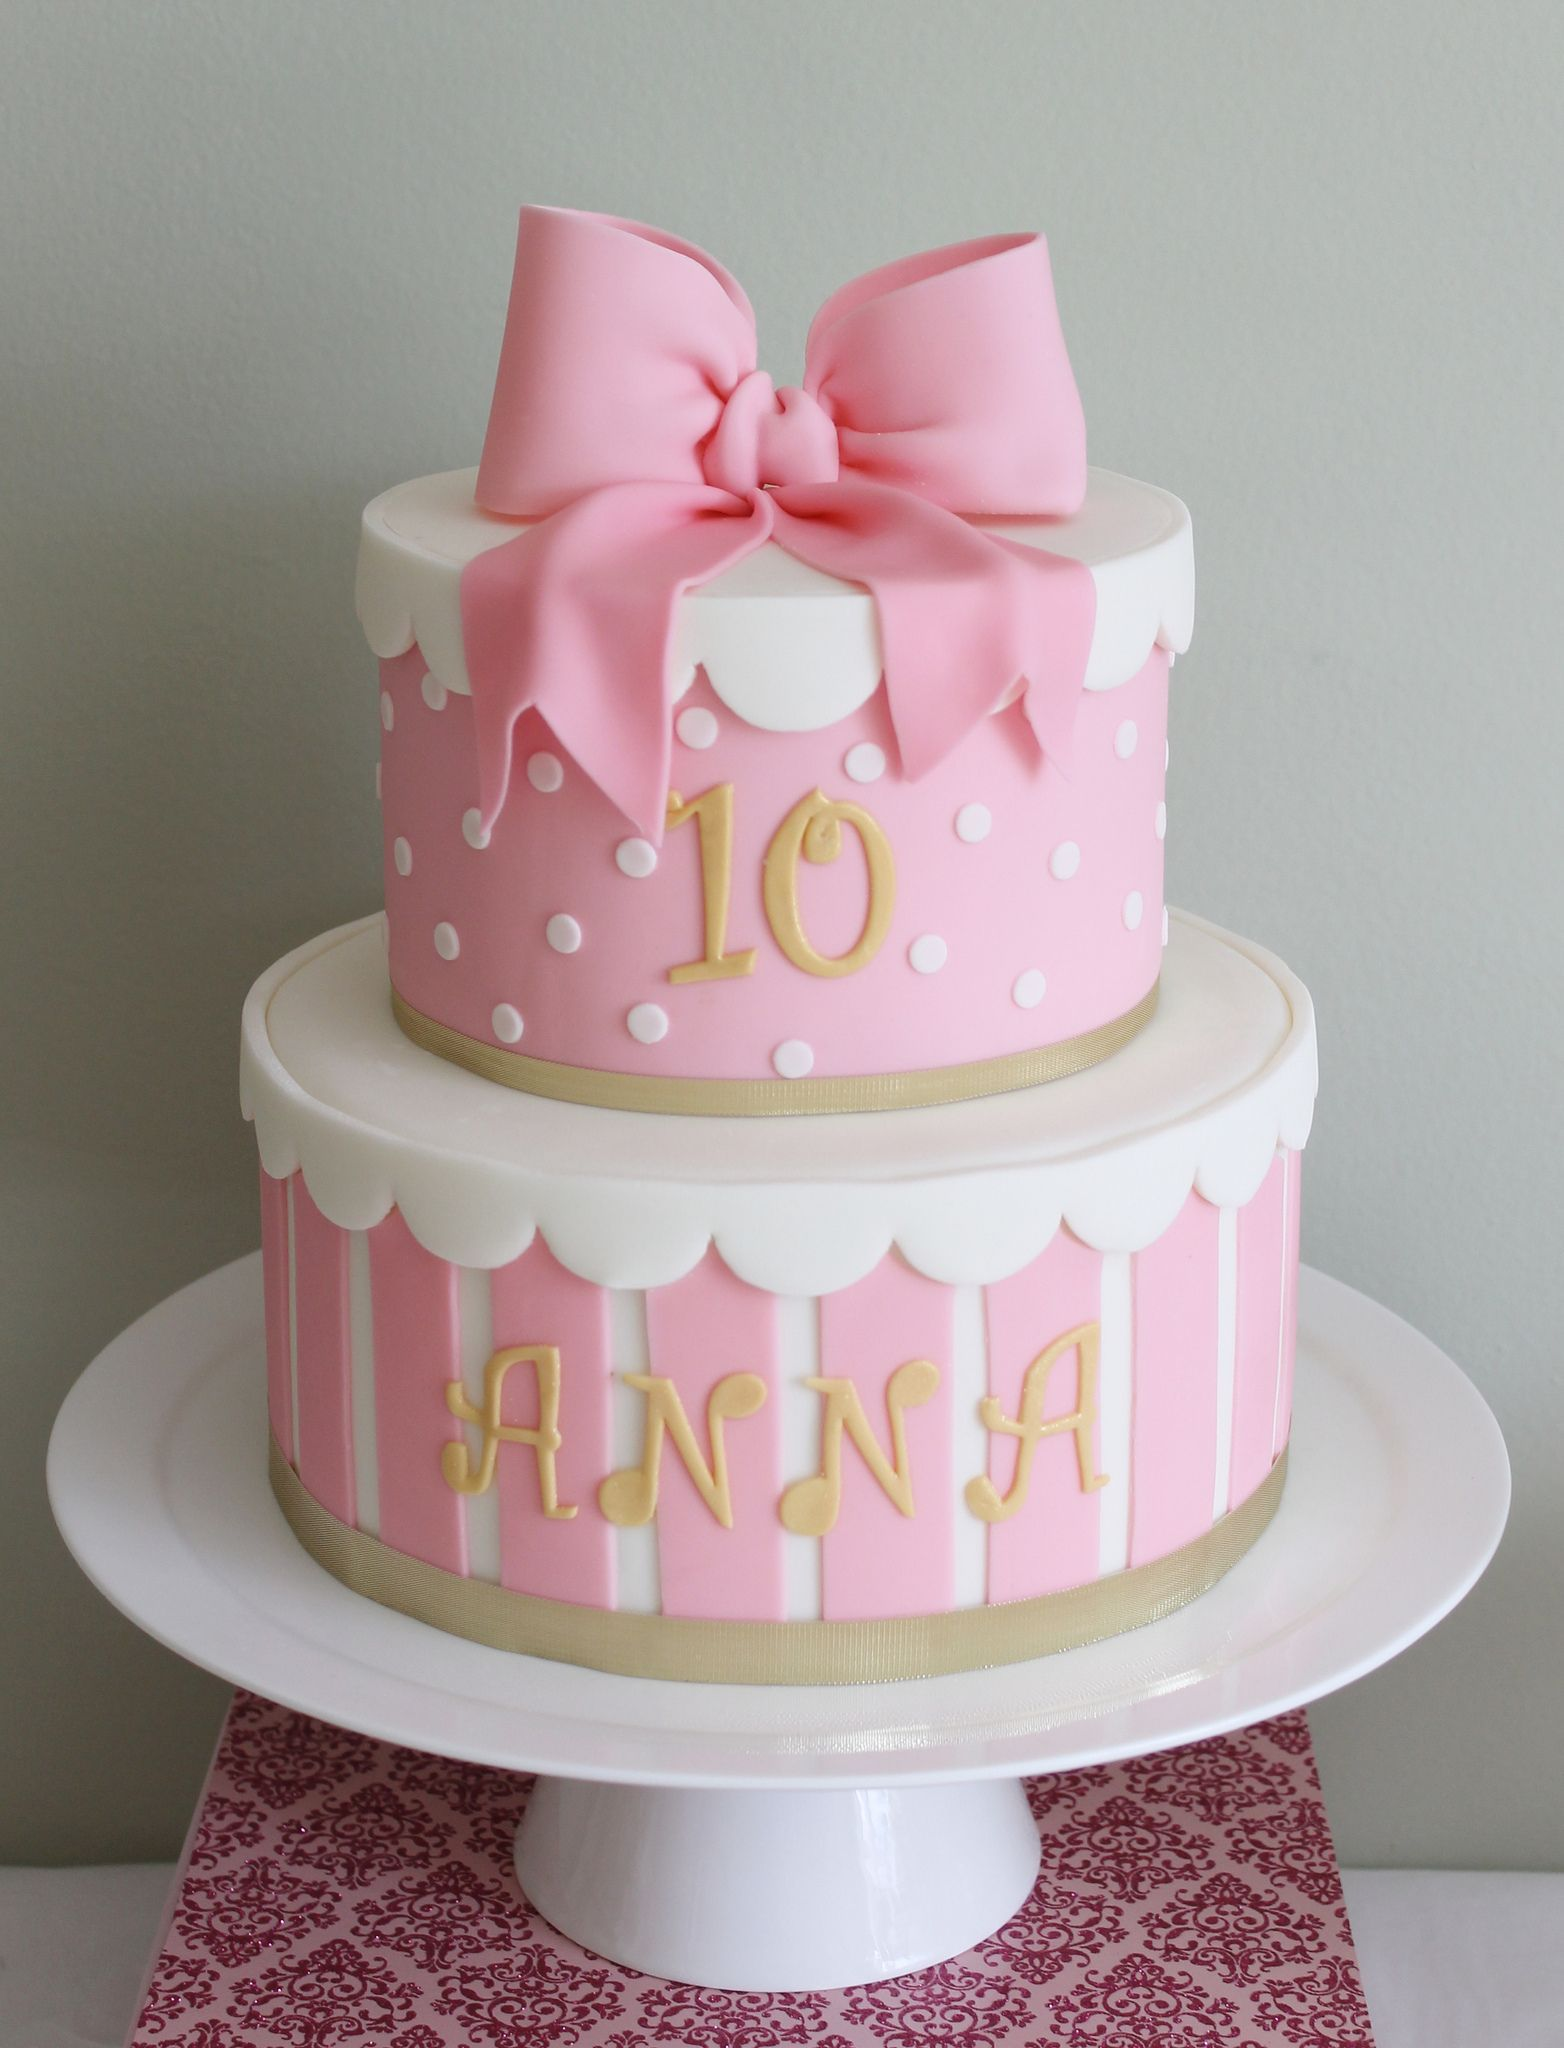 10 birthday first cake ideas for girl photo